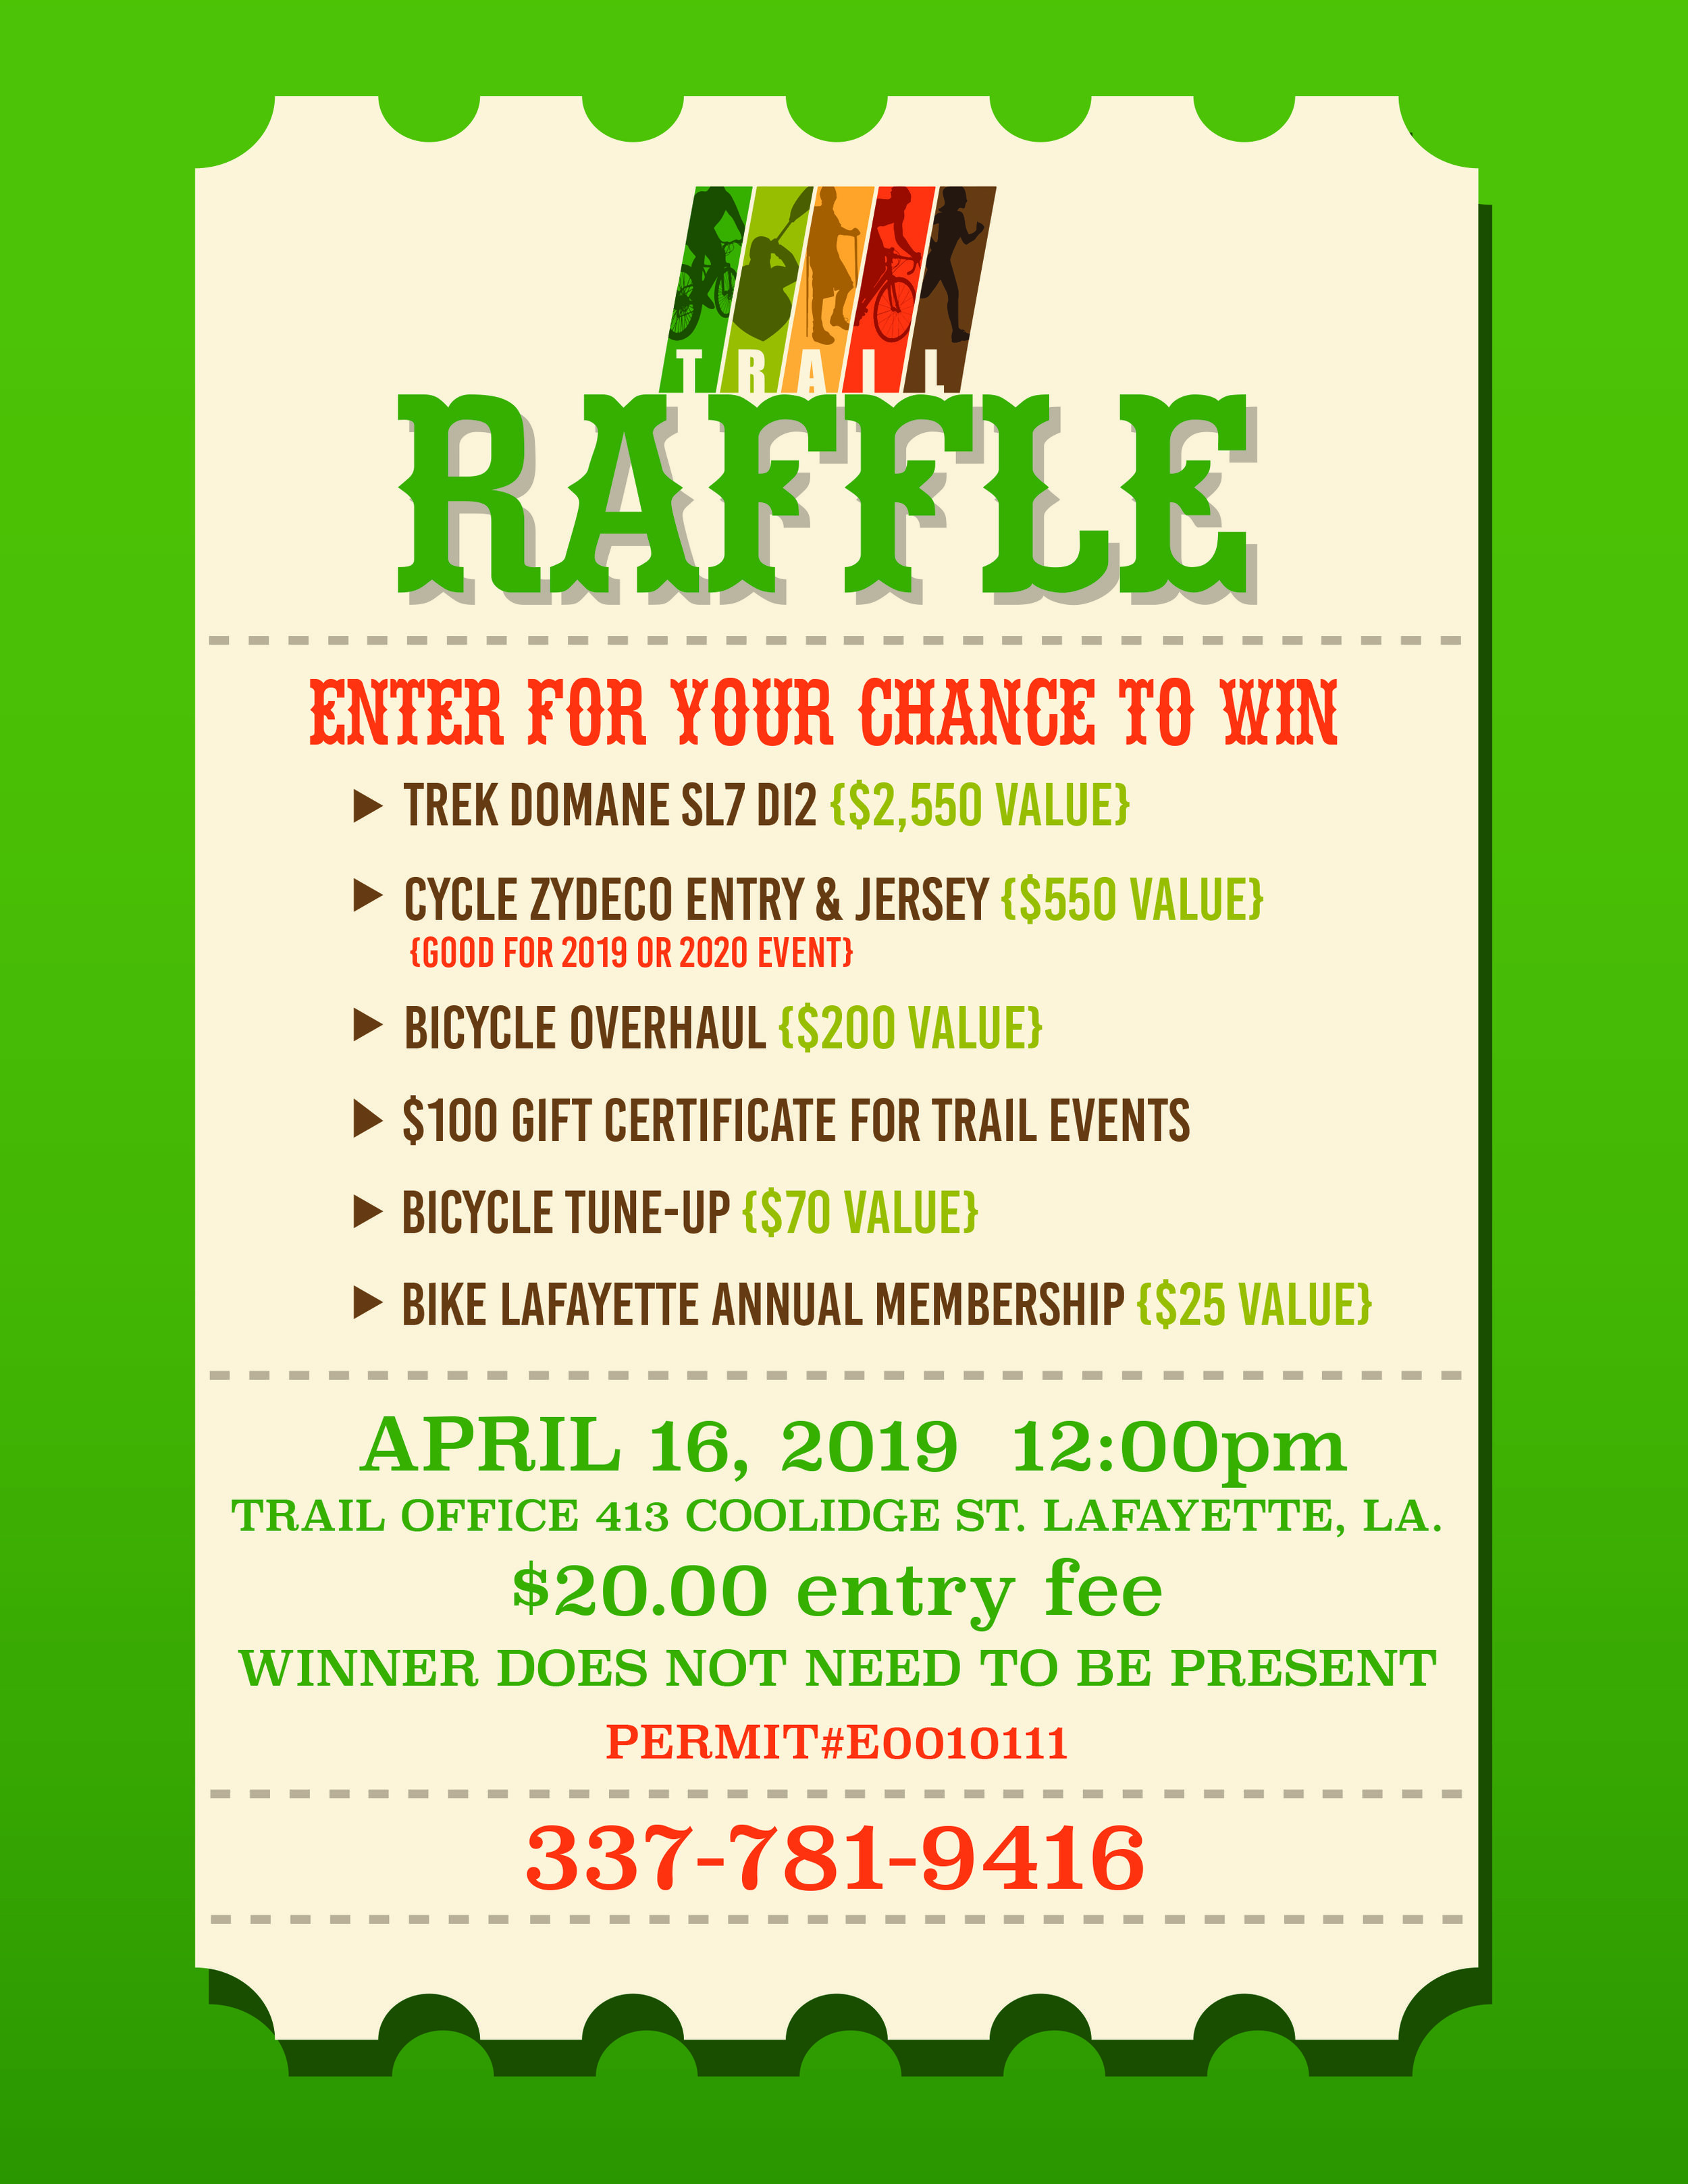 raffle ticket poster correct for 16th.jpg